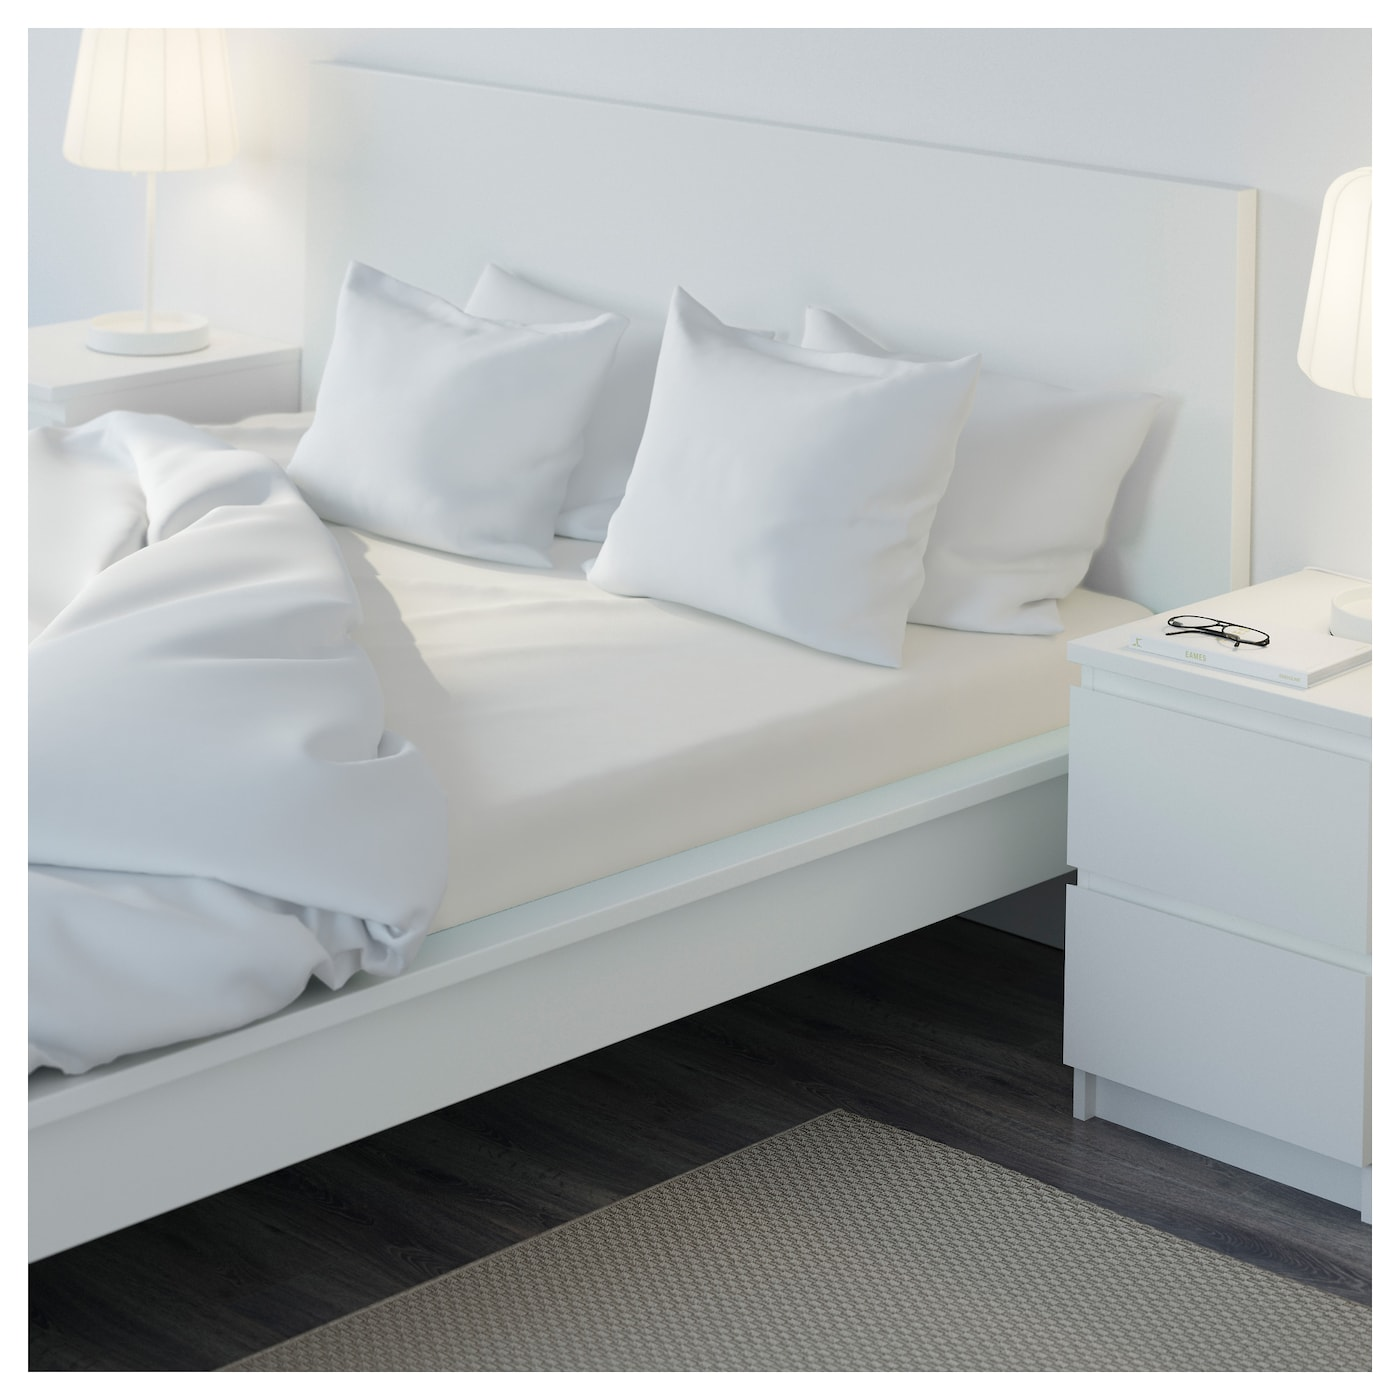 s mntuta drap housse blanc 160x200 cm ikea. Black Bedroom Furniture Sets. Home Design Ideas